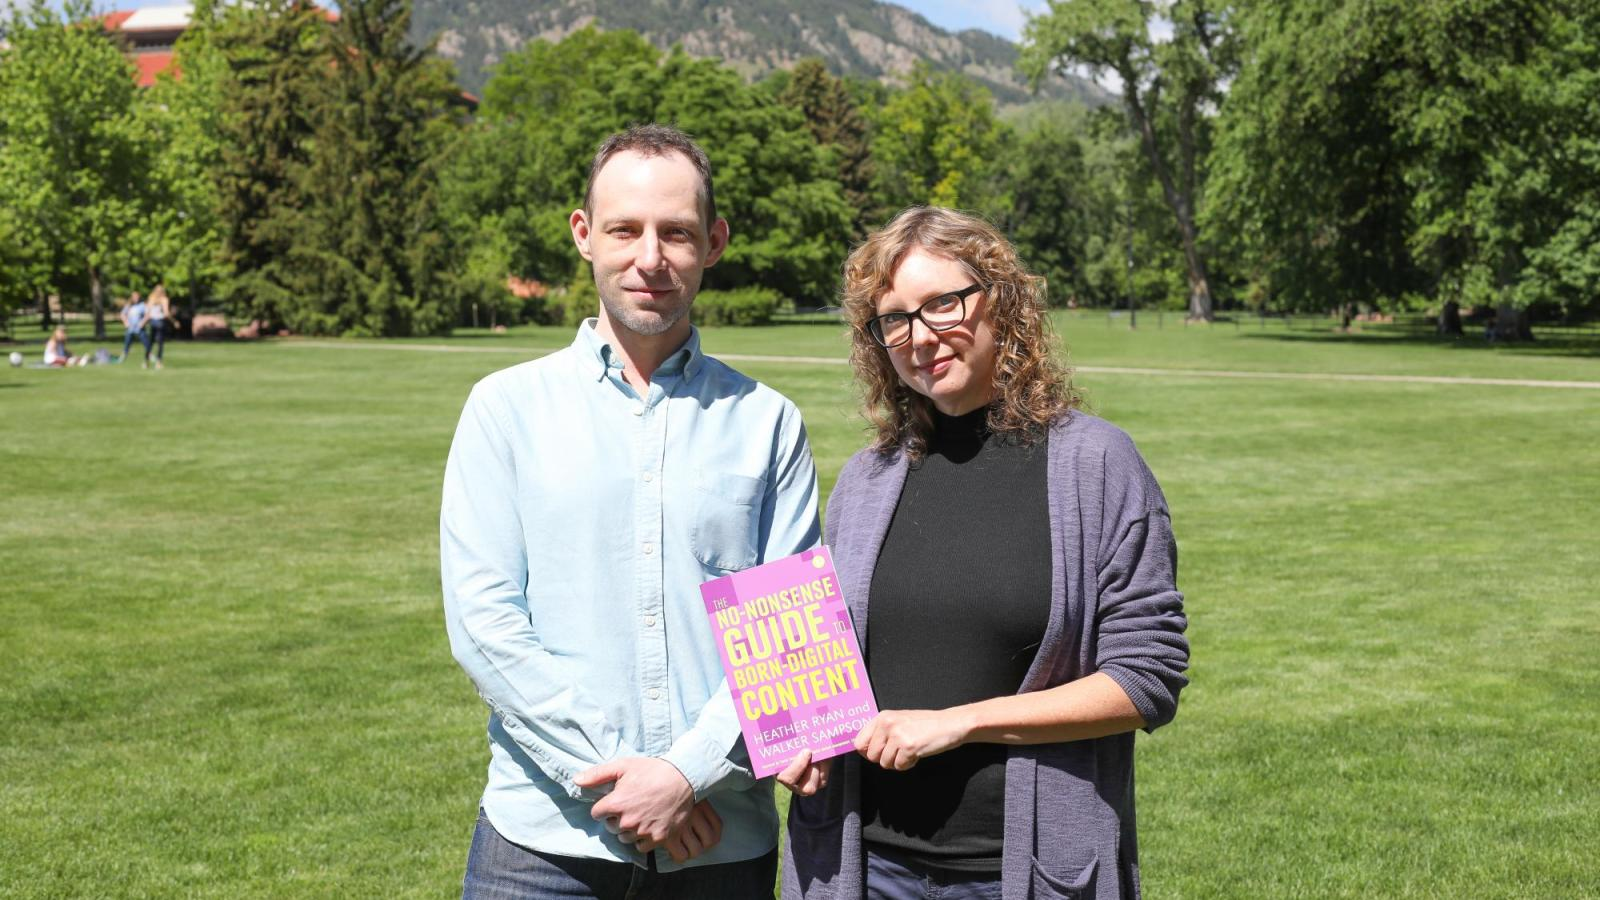 Professors Walker Sampson and Heather Bowden hold their book.